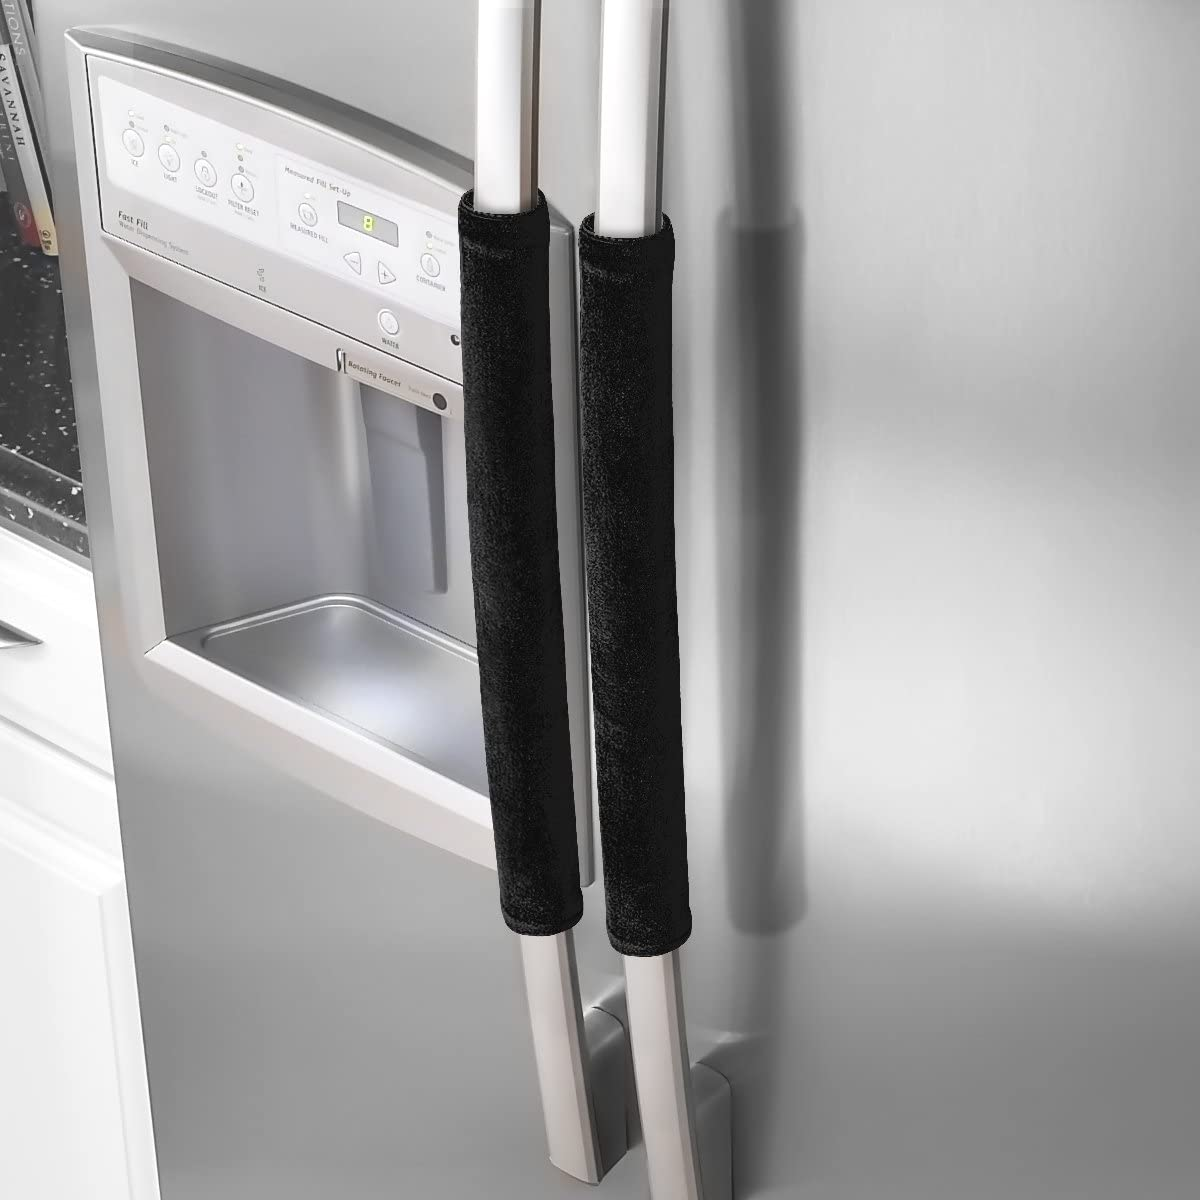 "OUGAR8 Refrigerator Door Handle Covers,Keep Your Kitchen Appliance Clean from Smudges,Fingertips,Drips&Food Stains,Perfect for Dishwashers(12"" L3.75 W, Black)"